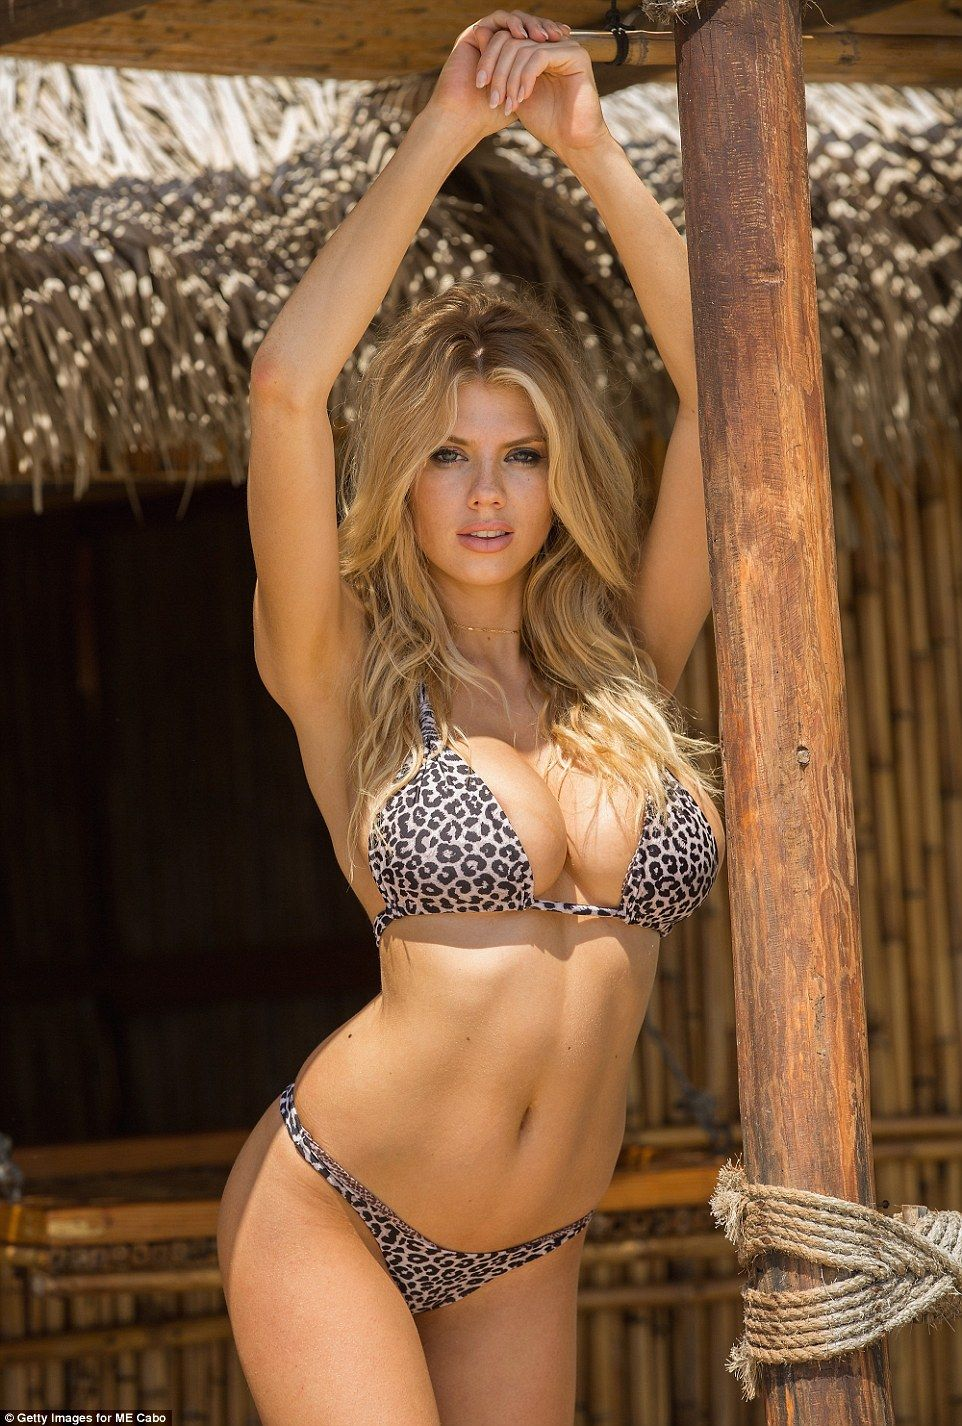 635bfcf6bb940 Knock their spots off in a leopard print bikini by Acacia Click visit to  buy